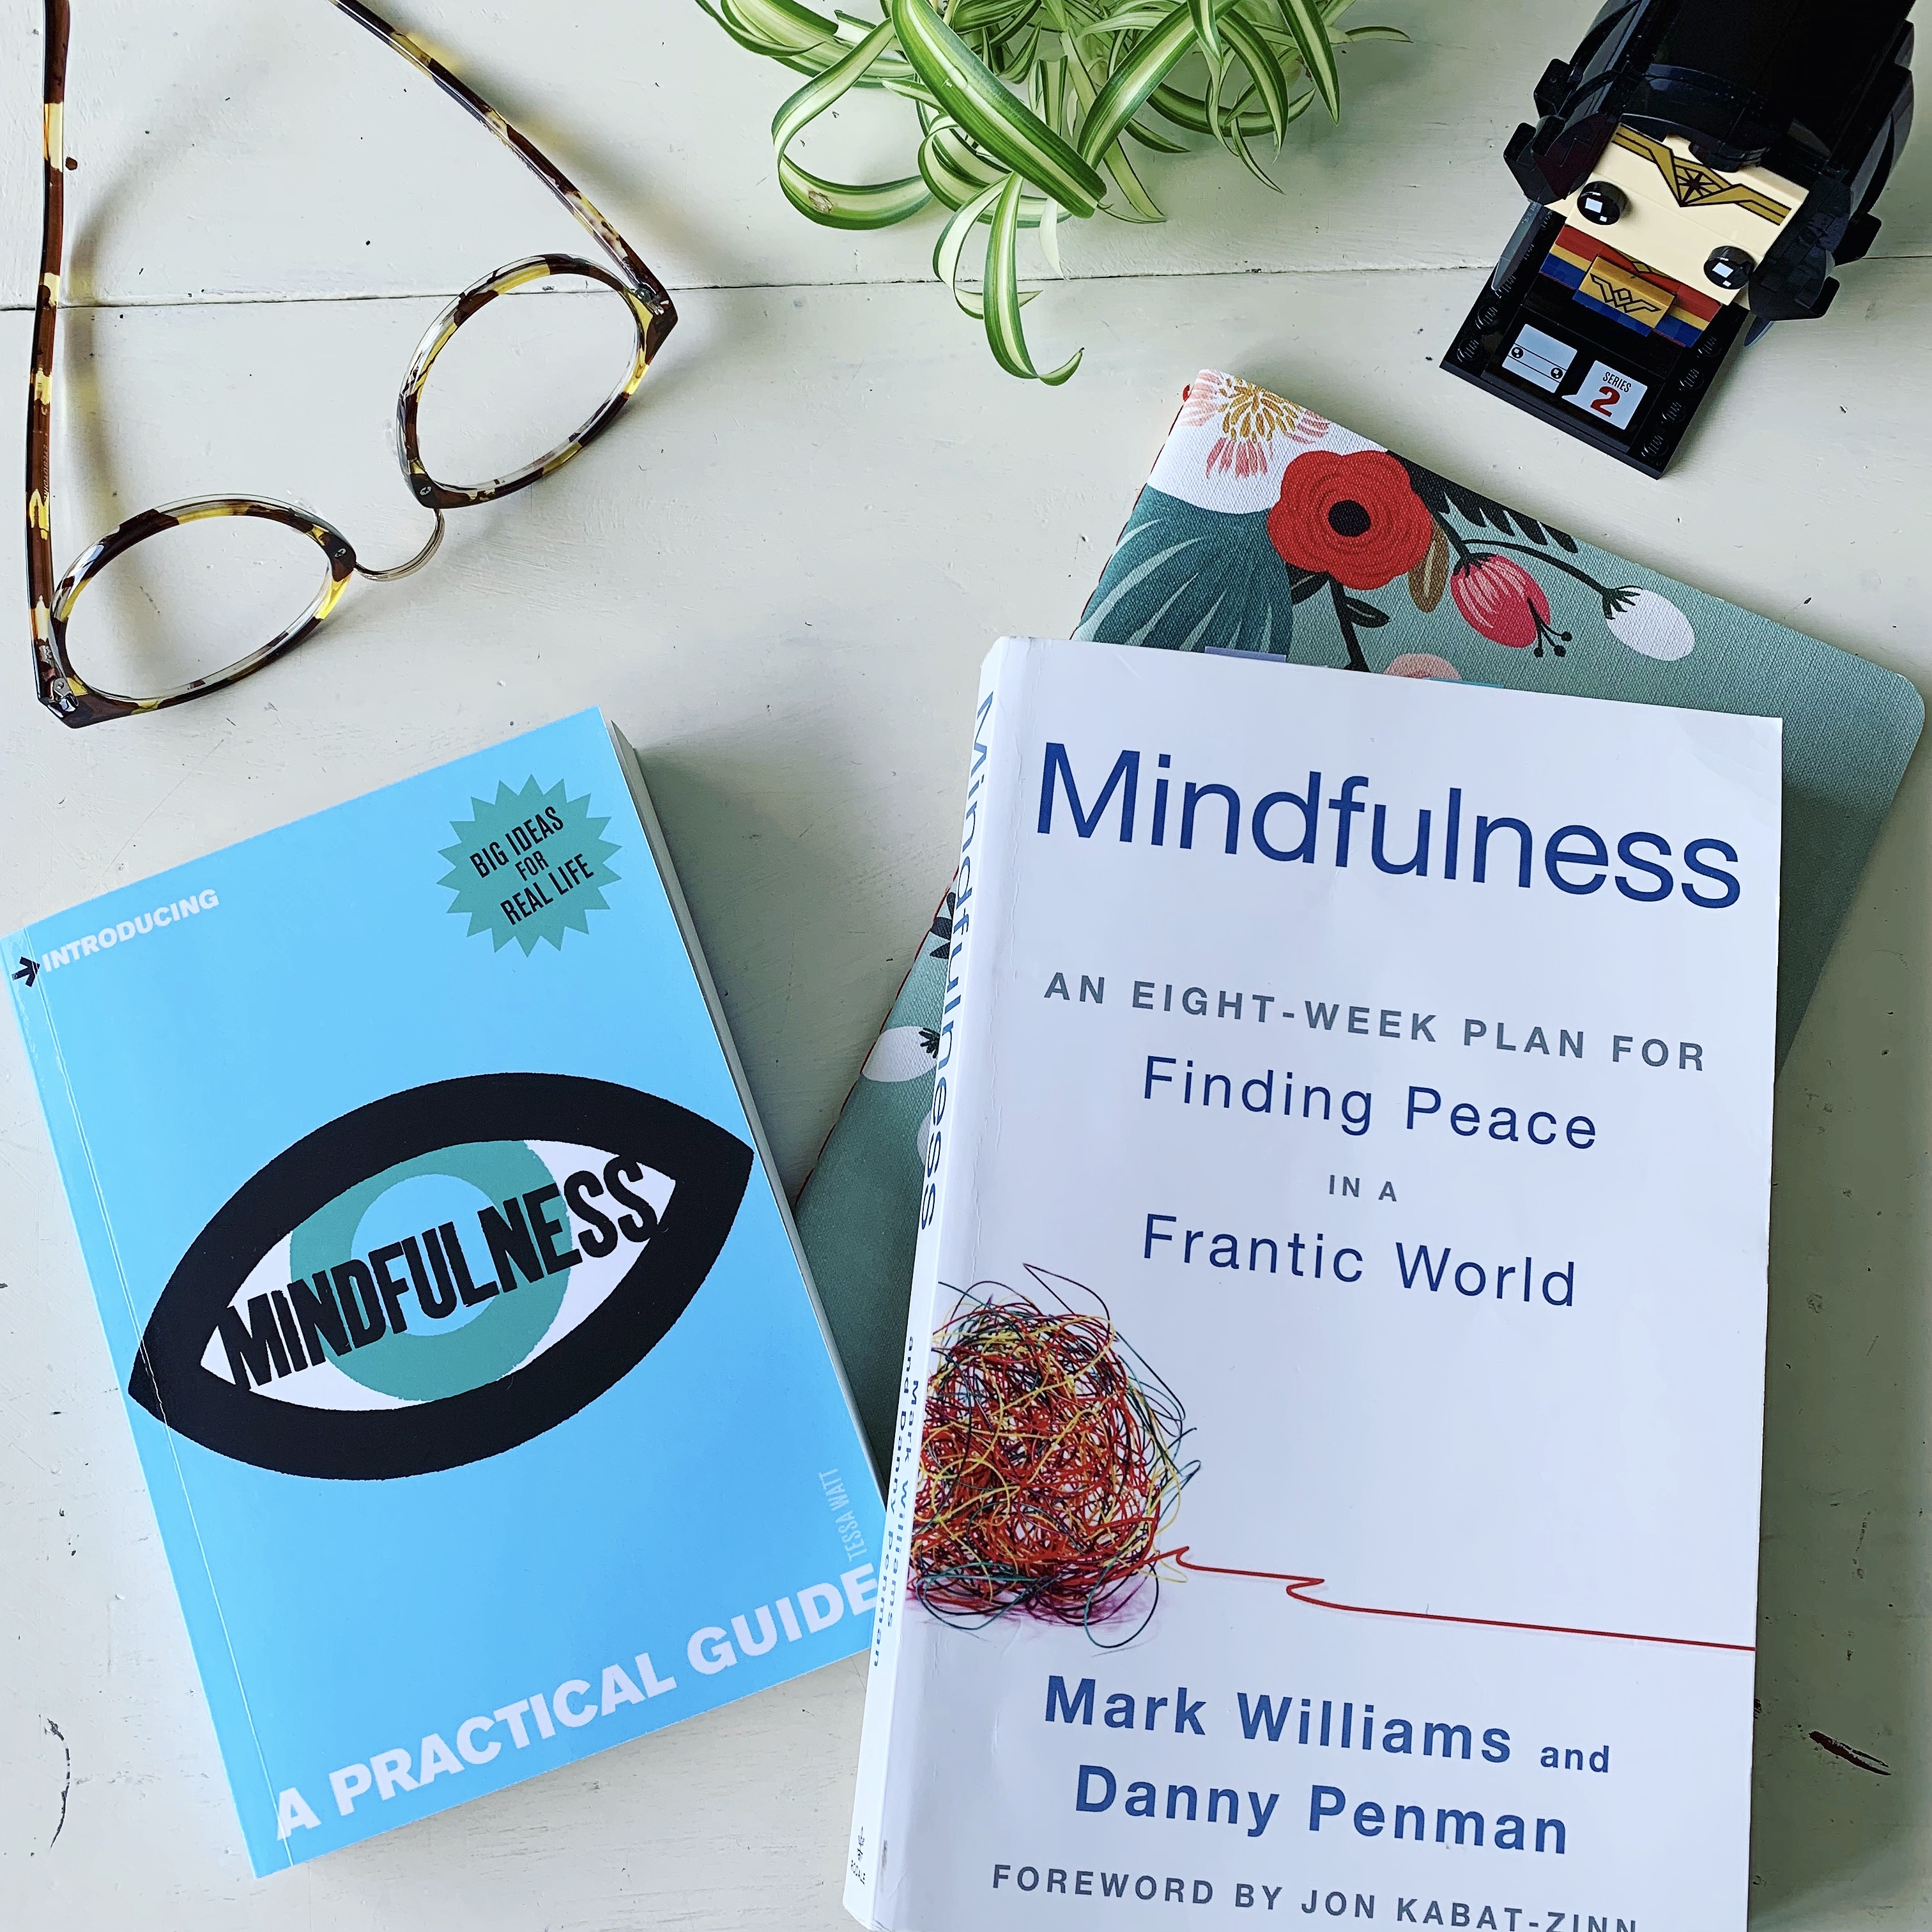 Photo of mindfulness books on table